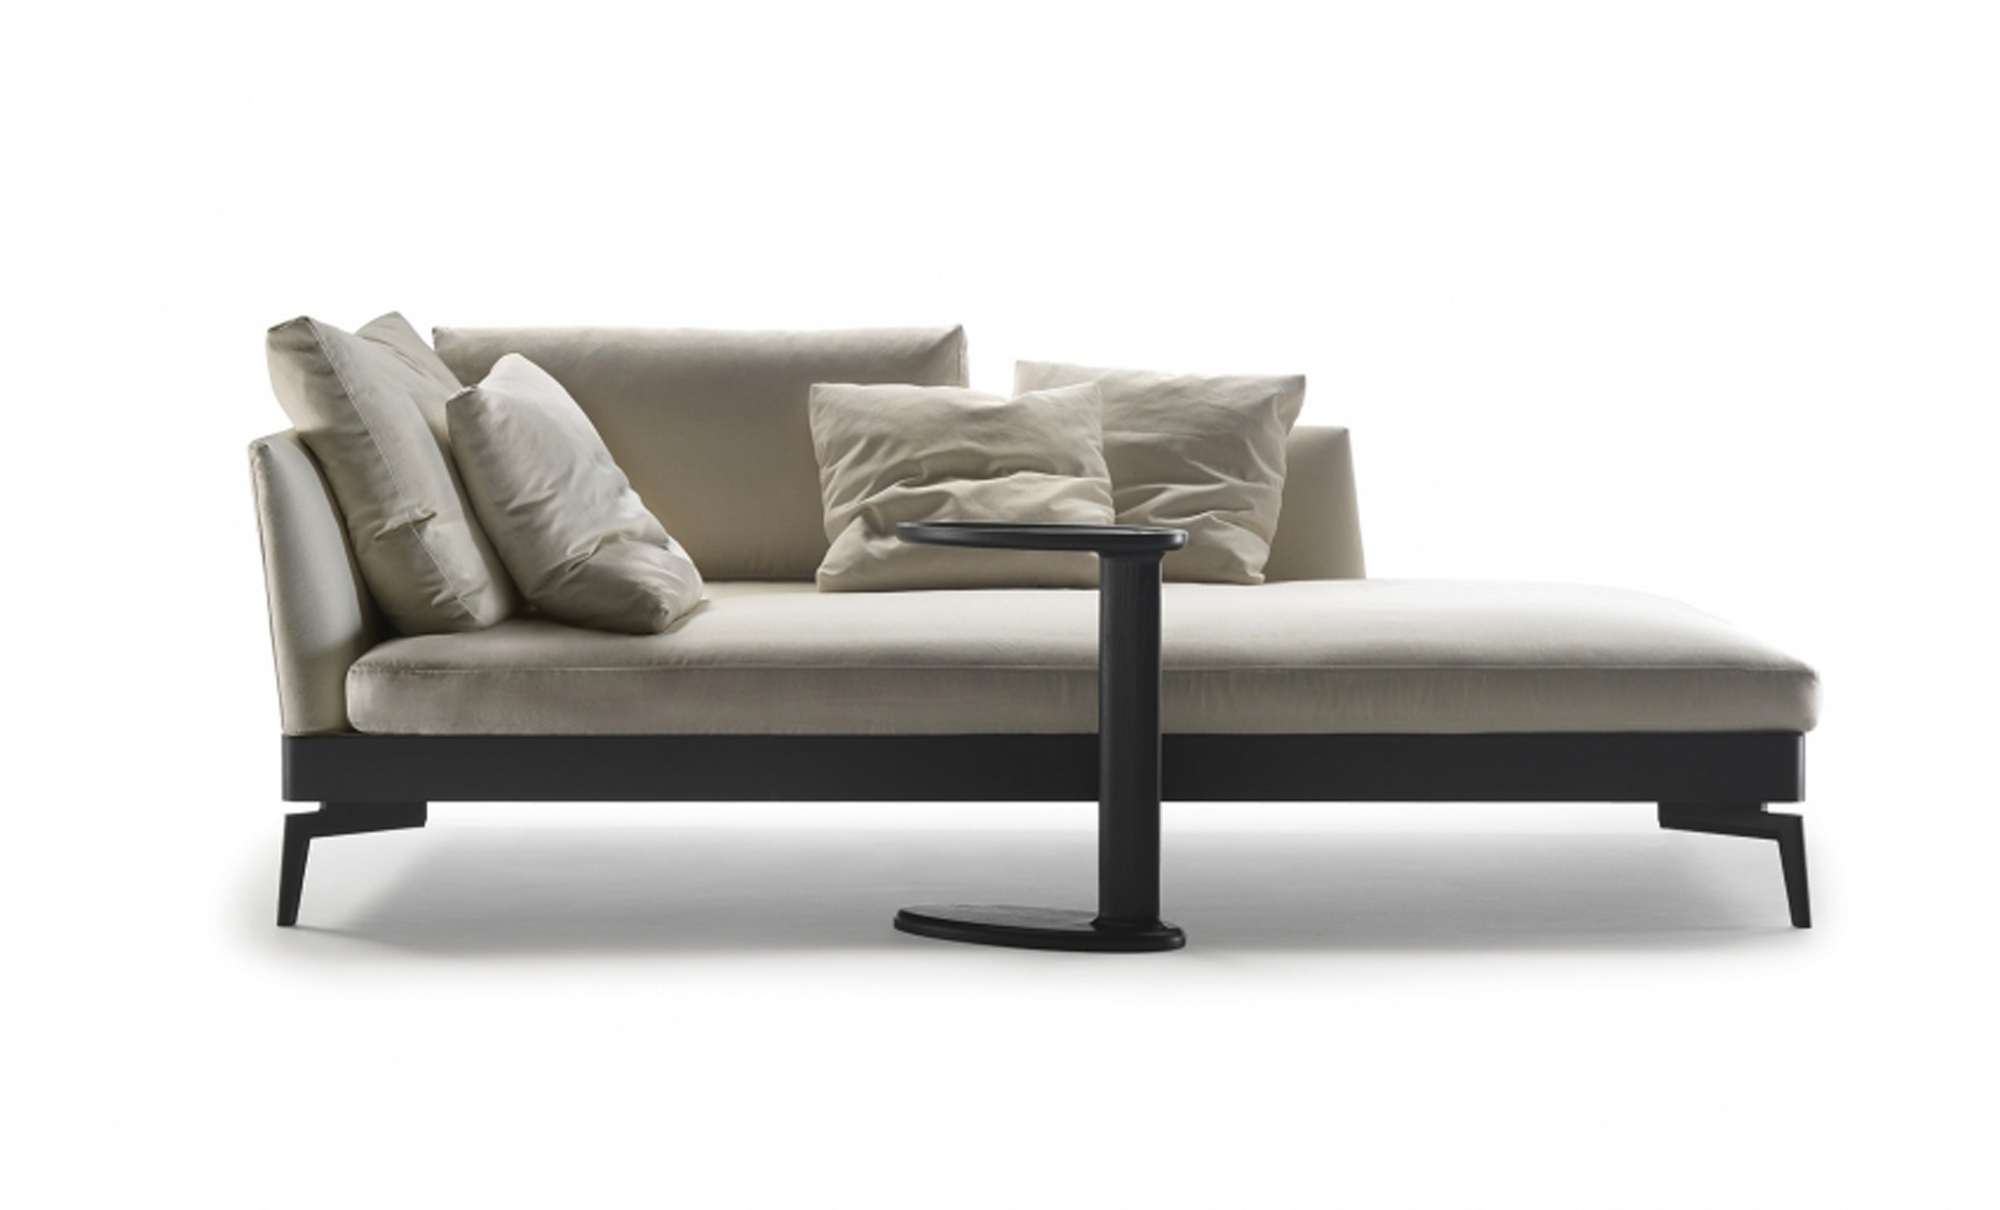 Chaise Beds For Best And Newest Feelgood – Sofabeds And Chaises – Fanuli Furniture (View 3 of 15)